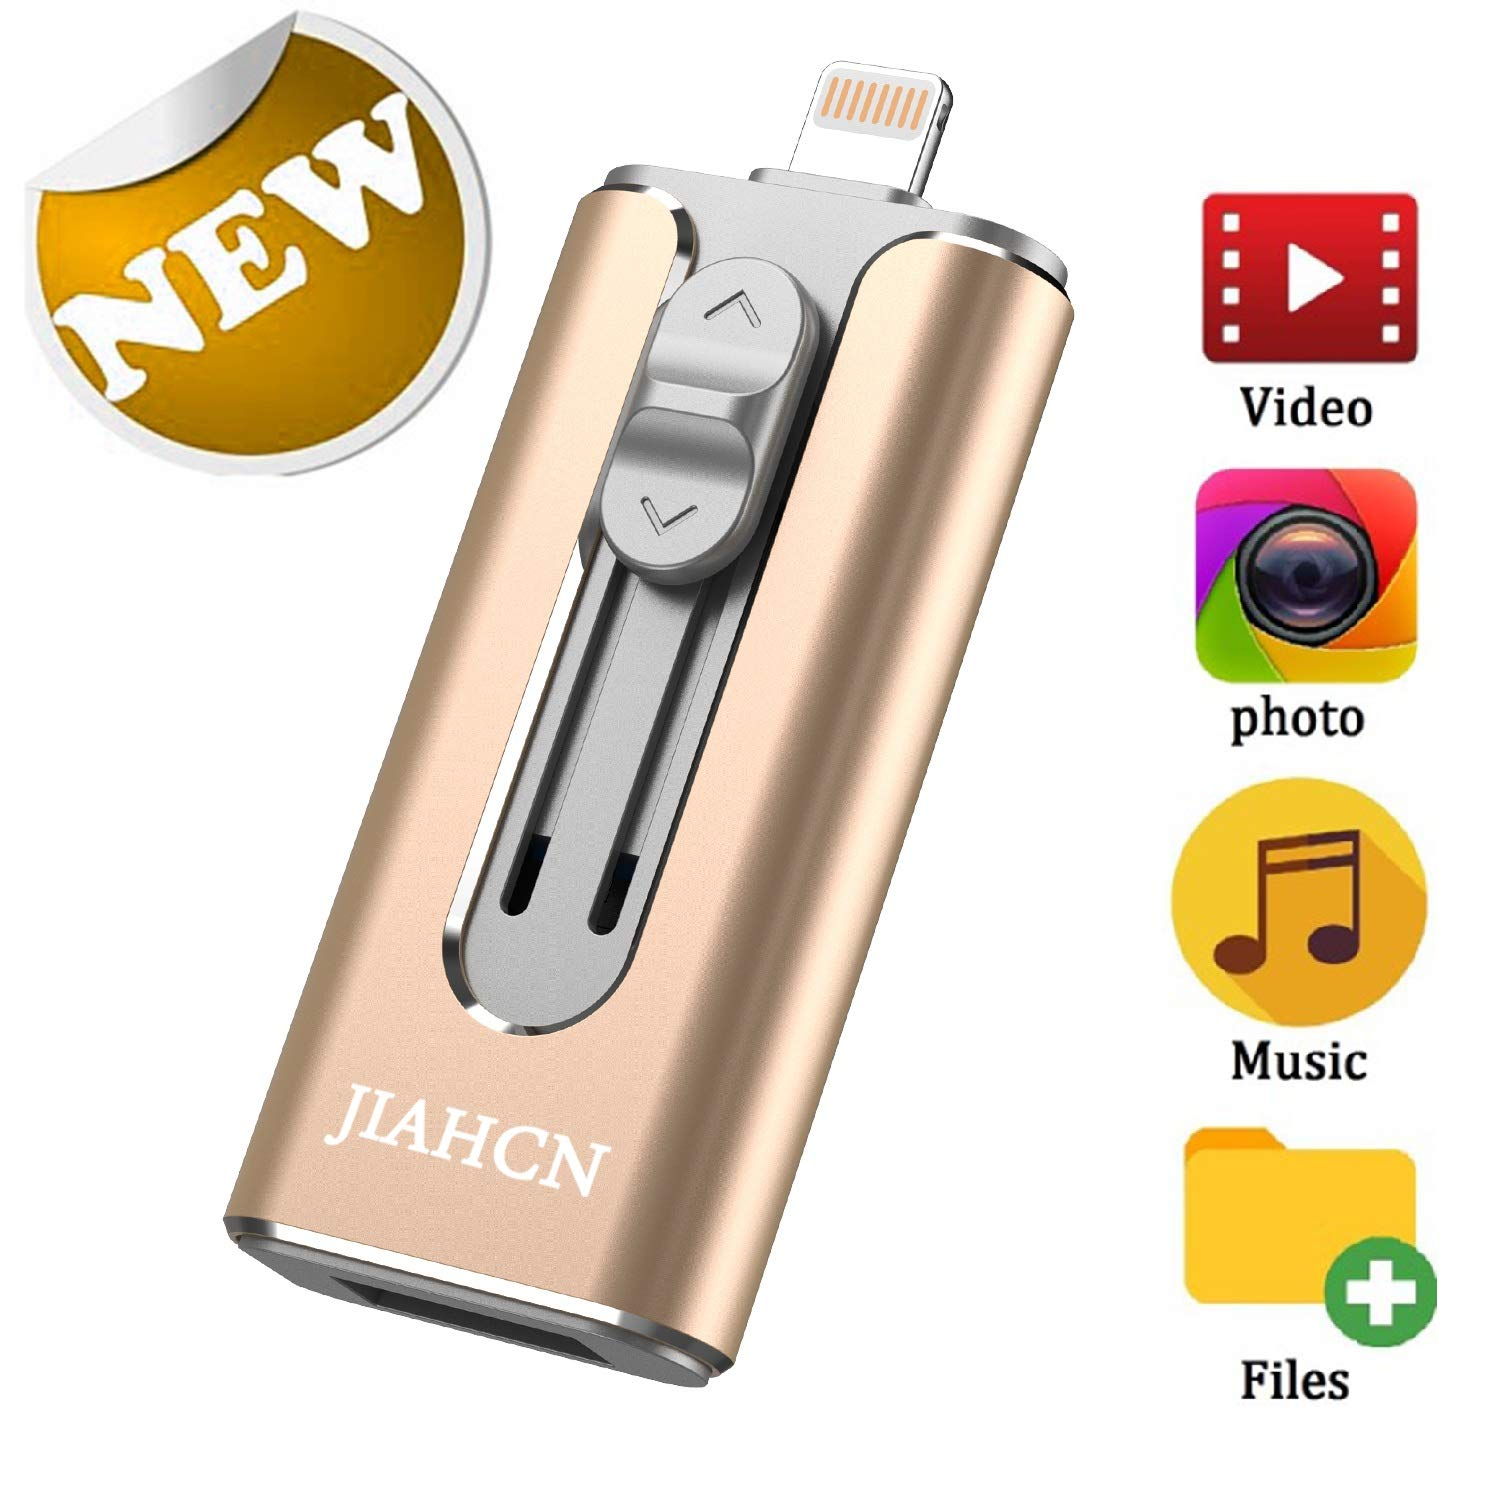 USB Flash Drive Photo Stick for iPhone Flash Drive 128GB JIAHCN iPhone External Storage USB 3.0 Mobile Memory Stick for iPhone,Android,PC Photo iPhone Picture Stick (Gold) by JIAHCN